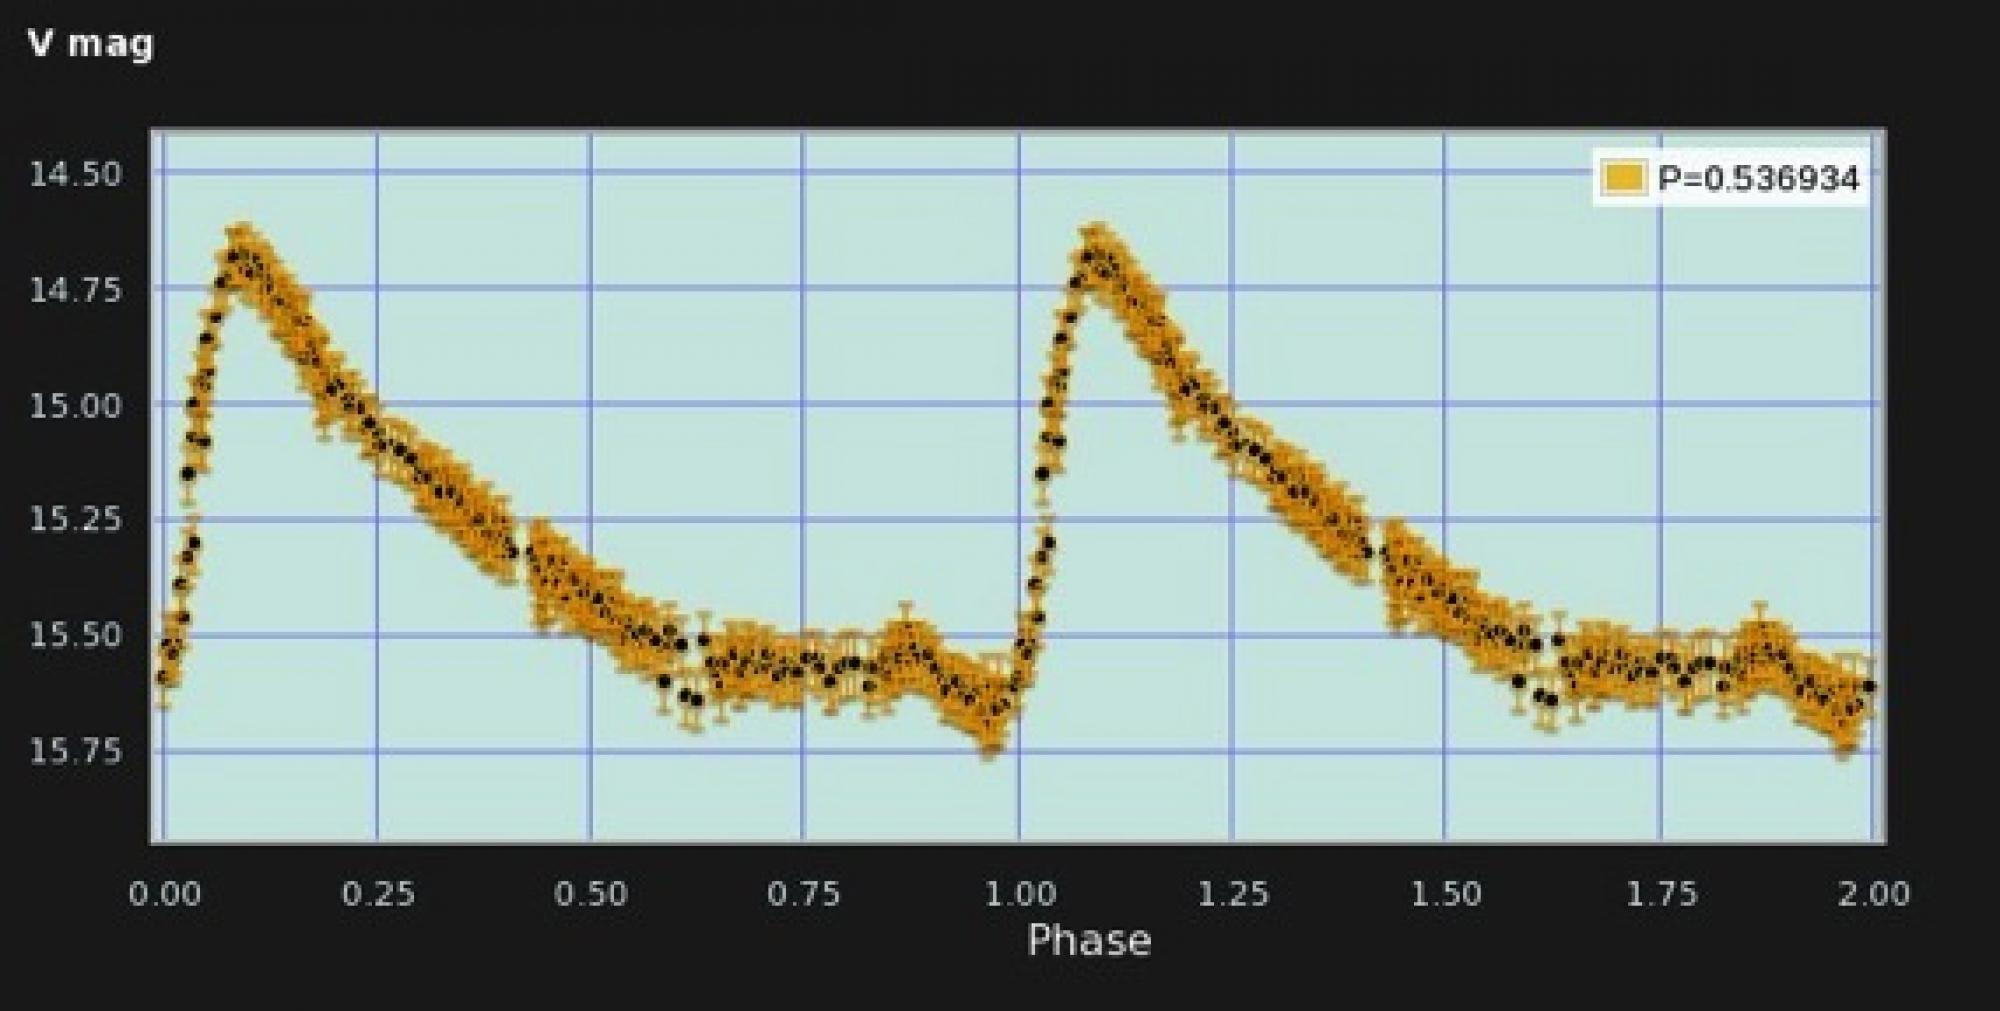 An example of what users see when they type in the celestial coordinate of an object to view a time-series light curve or download a computer-readable file of all observations in the database. This image shows the light curve of a variable star whose brig